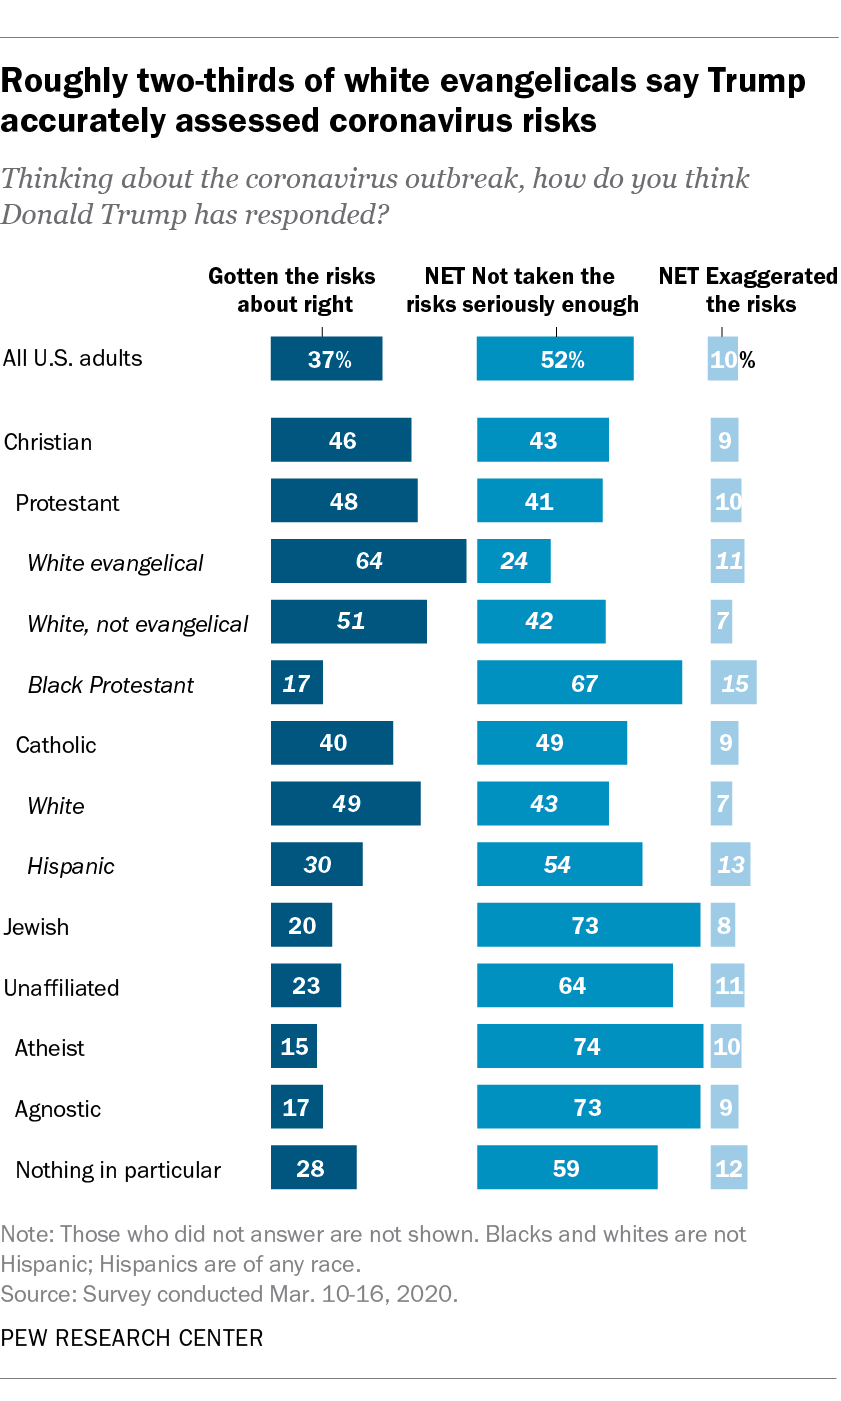 Roughly two-thirds of white evangelicals say Trump accurately assessed coronavirus risks